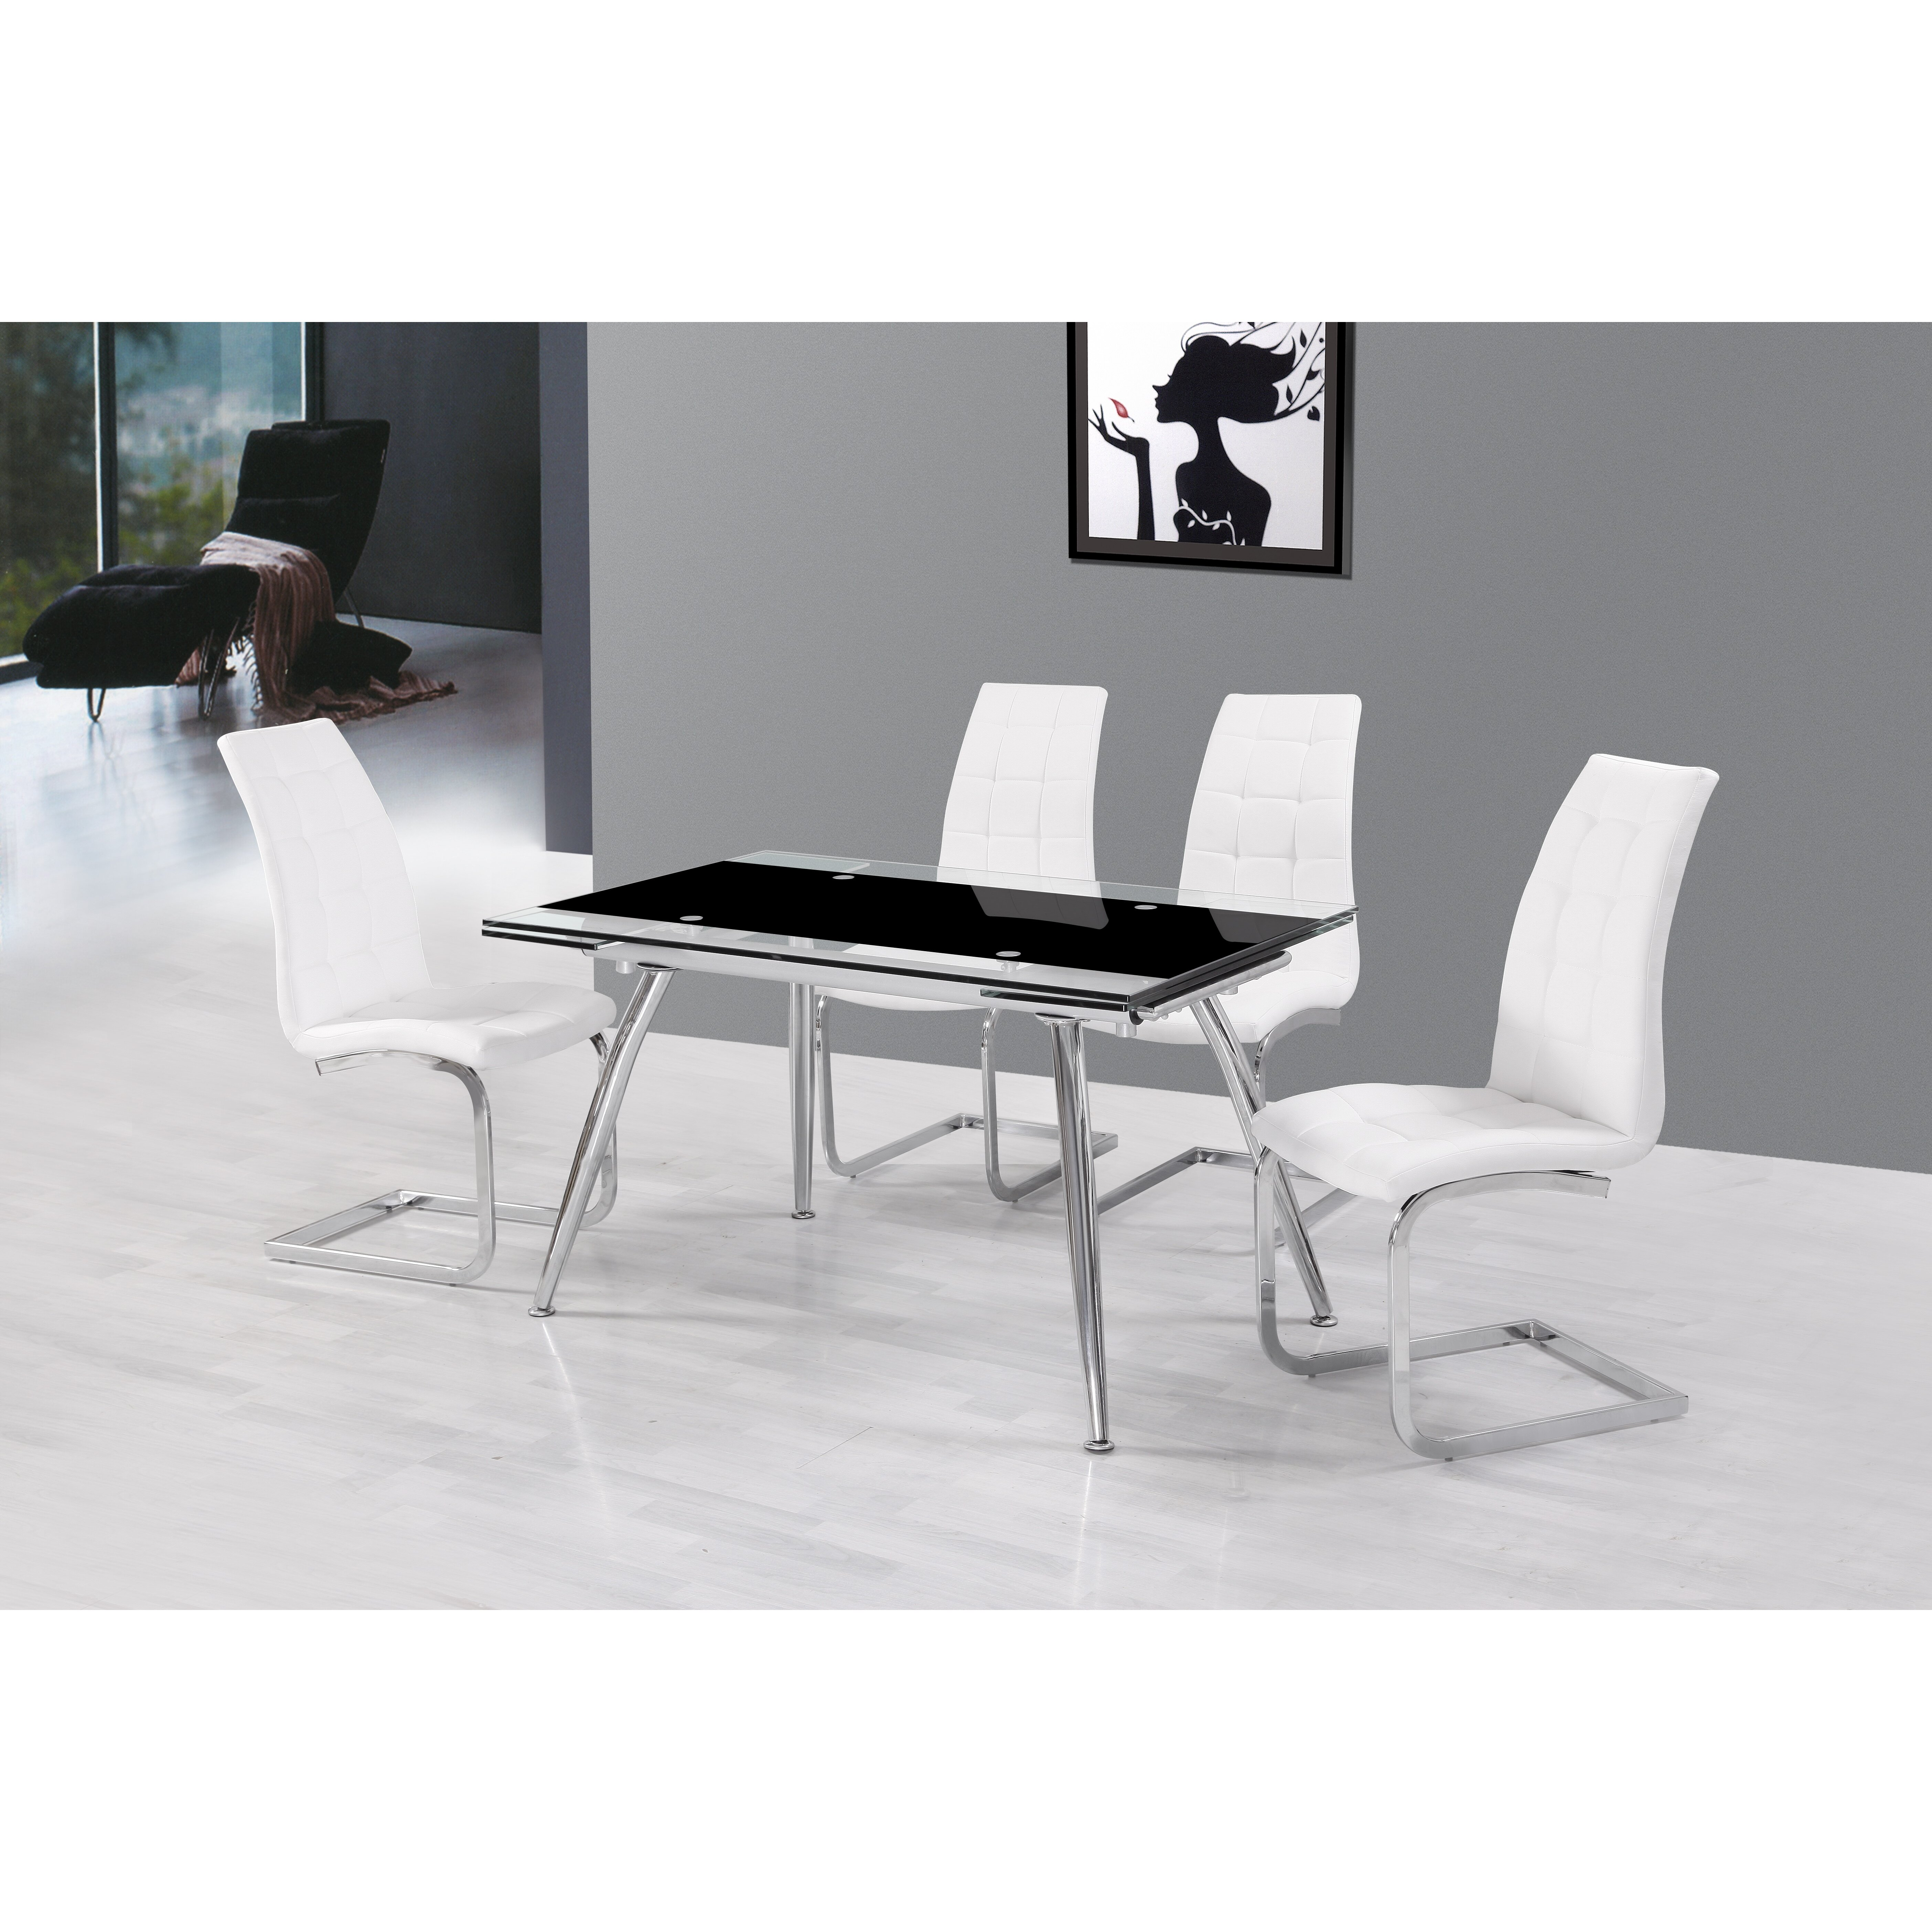 Urban Designs Micha Extendable Dining Table amp Reviews  : Urban Designs Micha Extendable Dining Table from www.wayfair.co.uk size 5616 x 5616 jpeg 3479kB